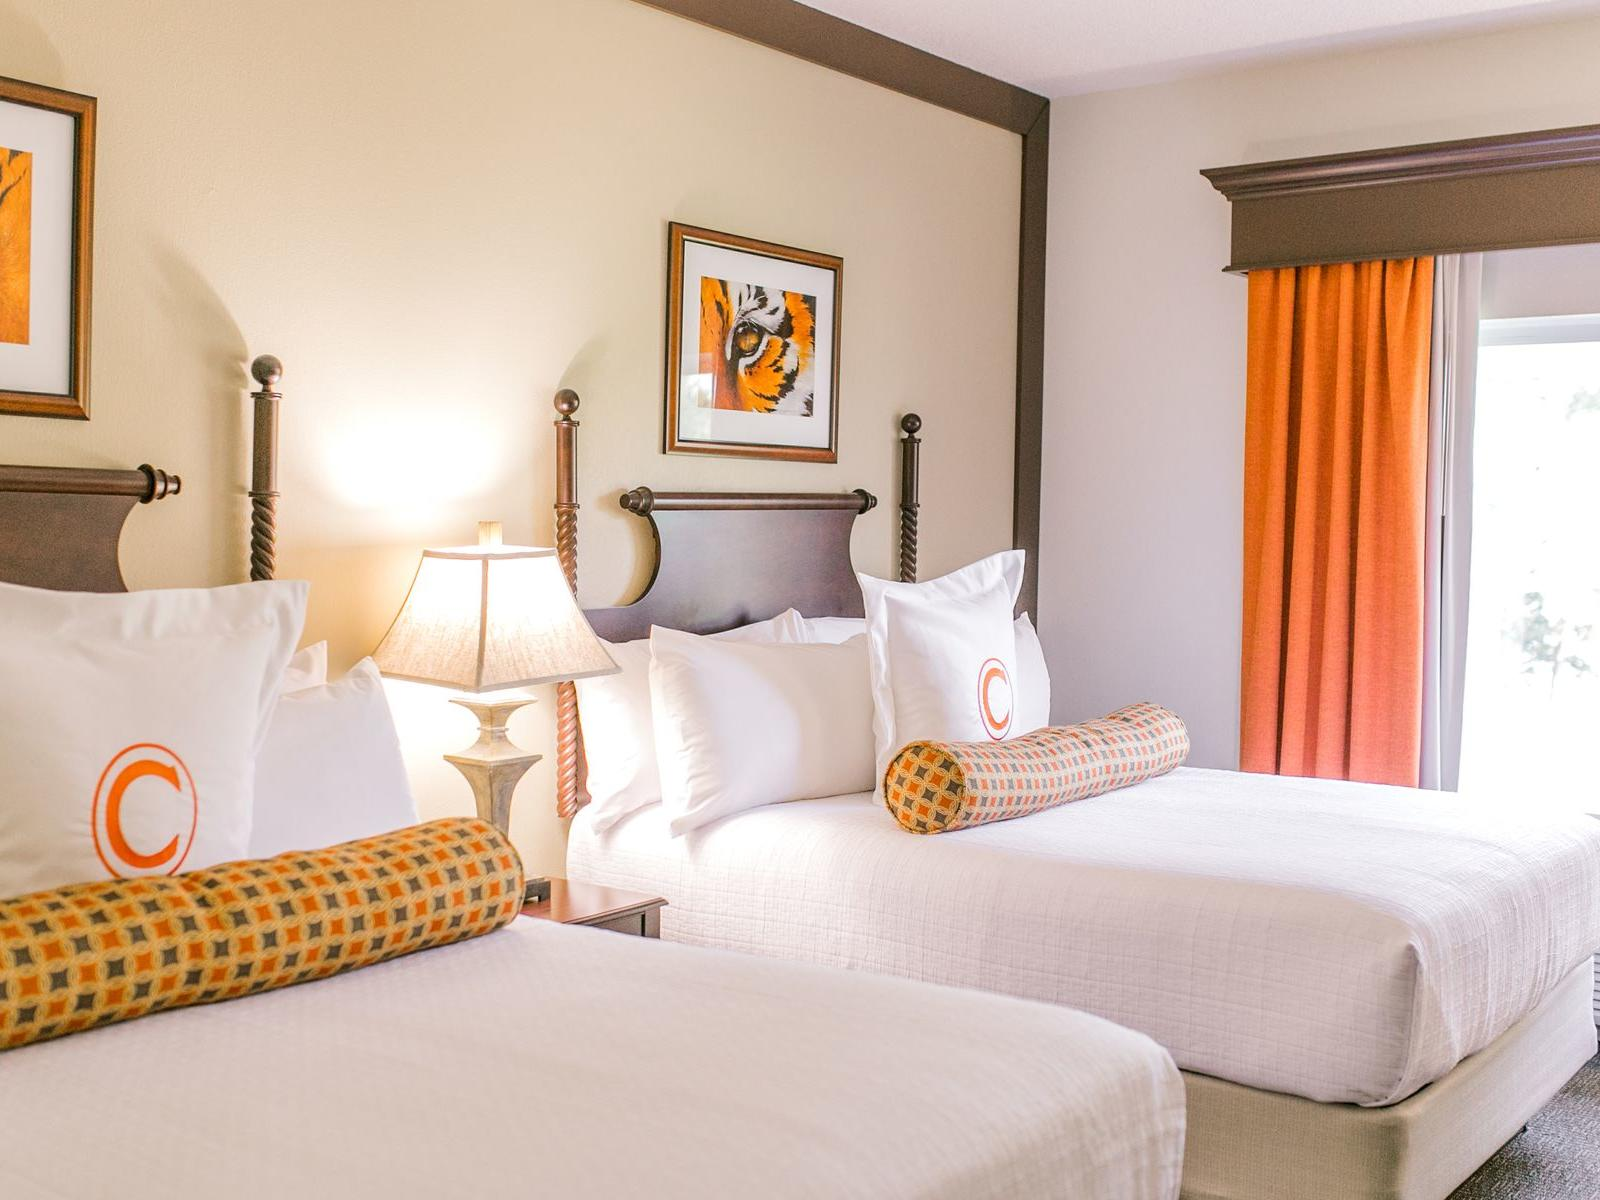 two white beds in hotel room with window and orange curtains